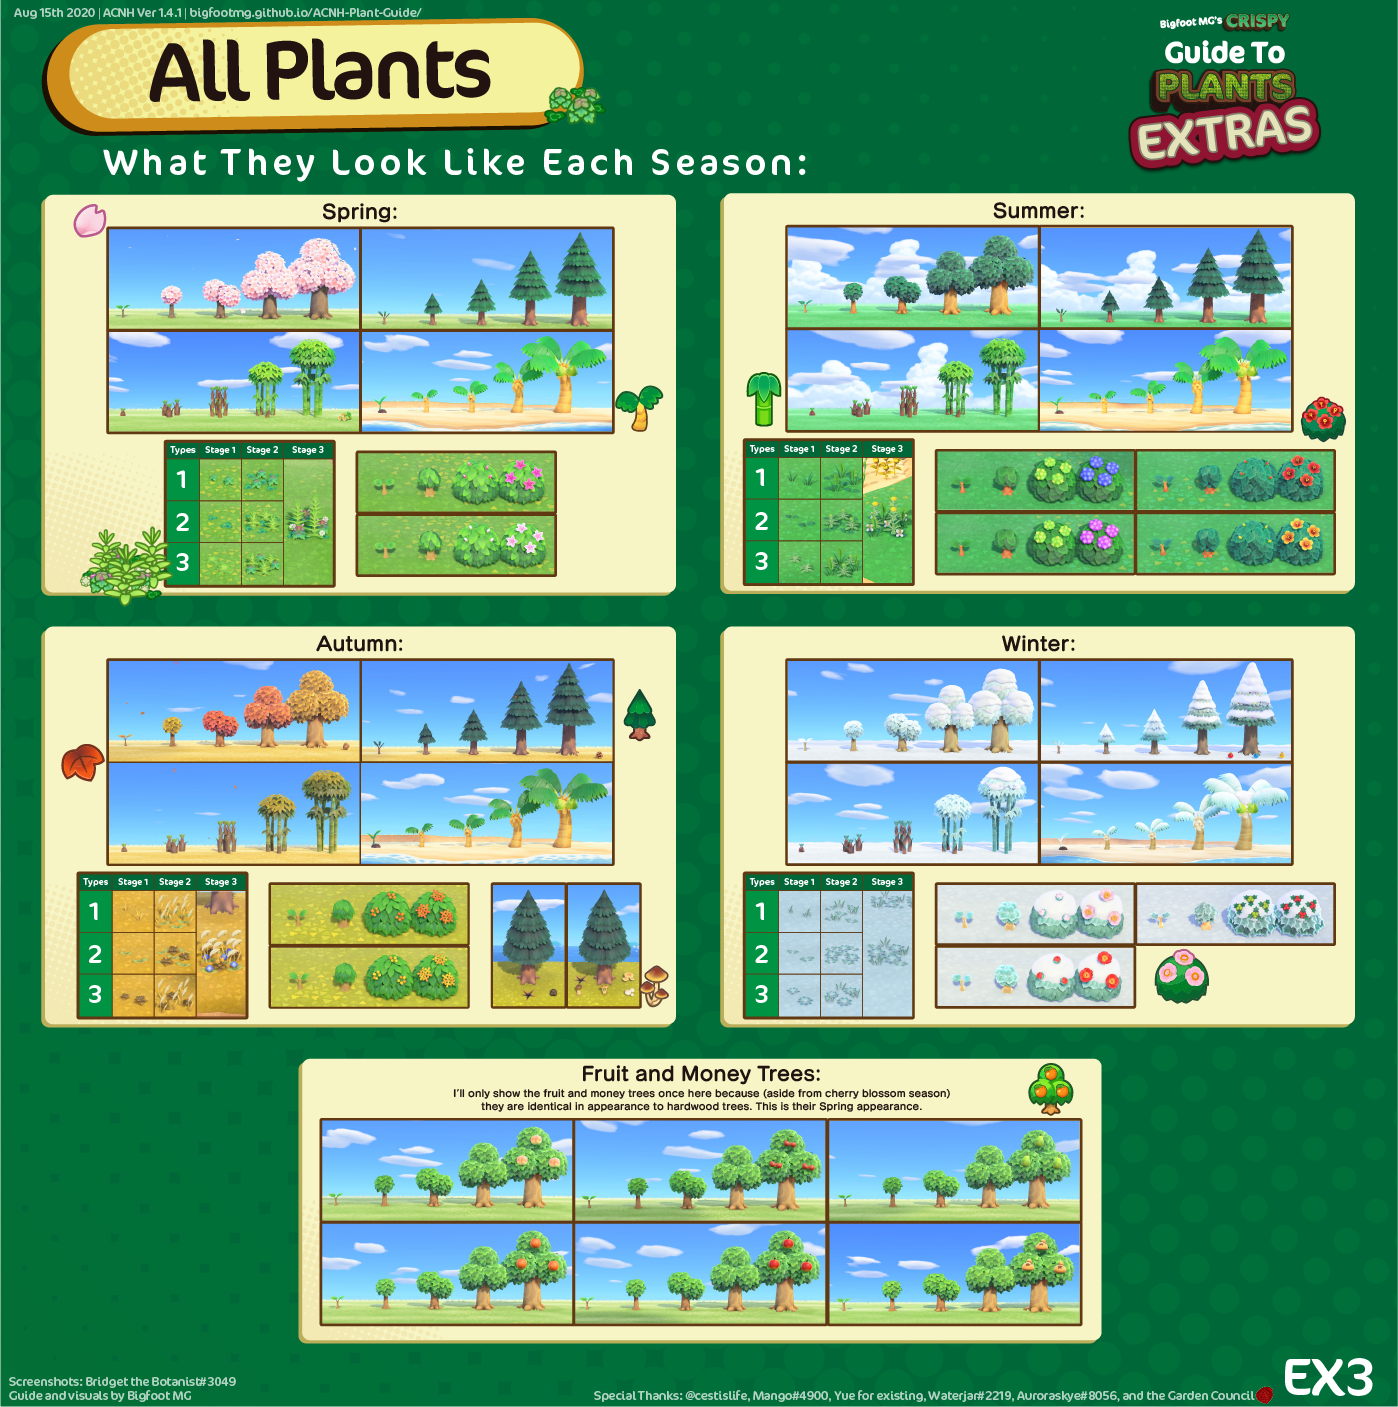 Acnh Plant Guide Plant Guide Animal Crossing New Animal Crossing